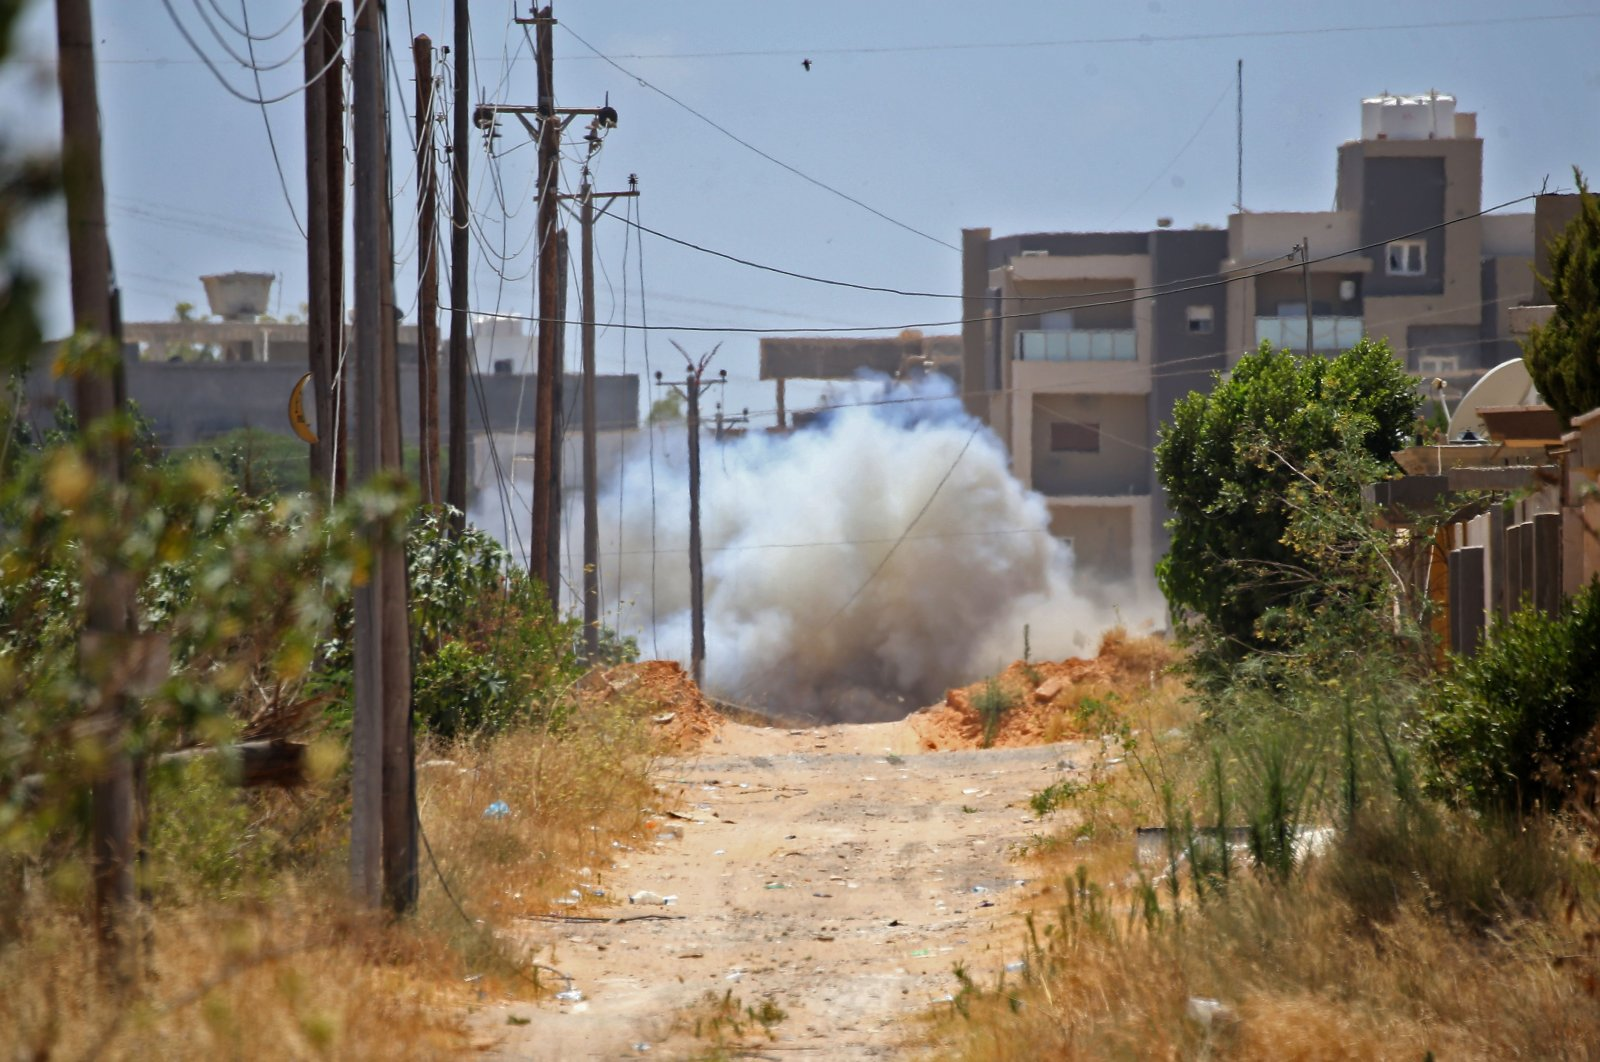 In this file photo, a landmine is exploded during Turkish demining operations in the Salah al-Din area, south of the Libyan capital Tripoli, on June 15, 2020. (AFP File Photo)